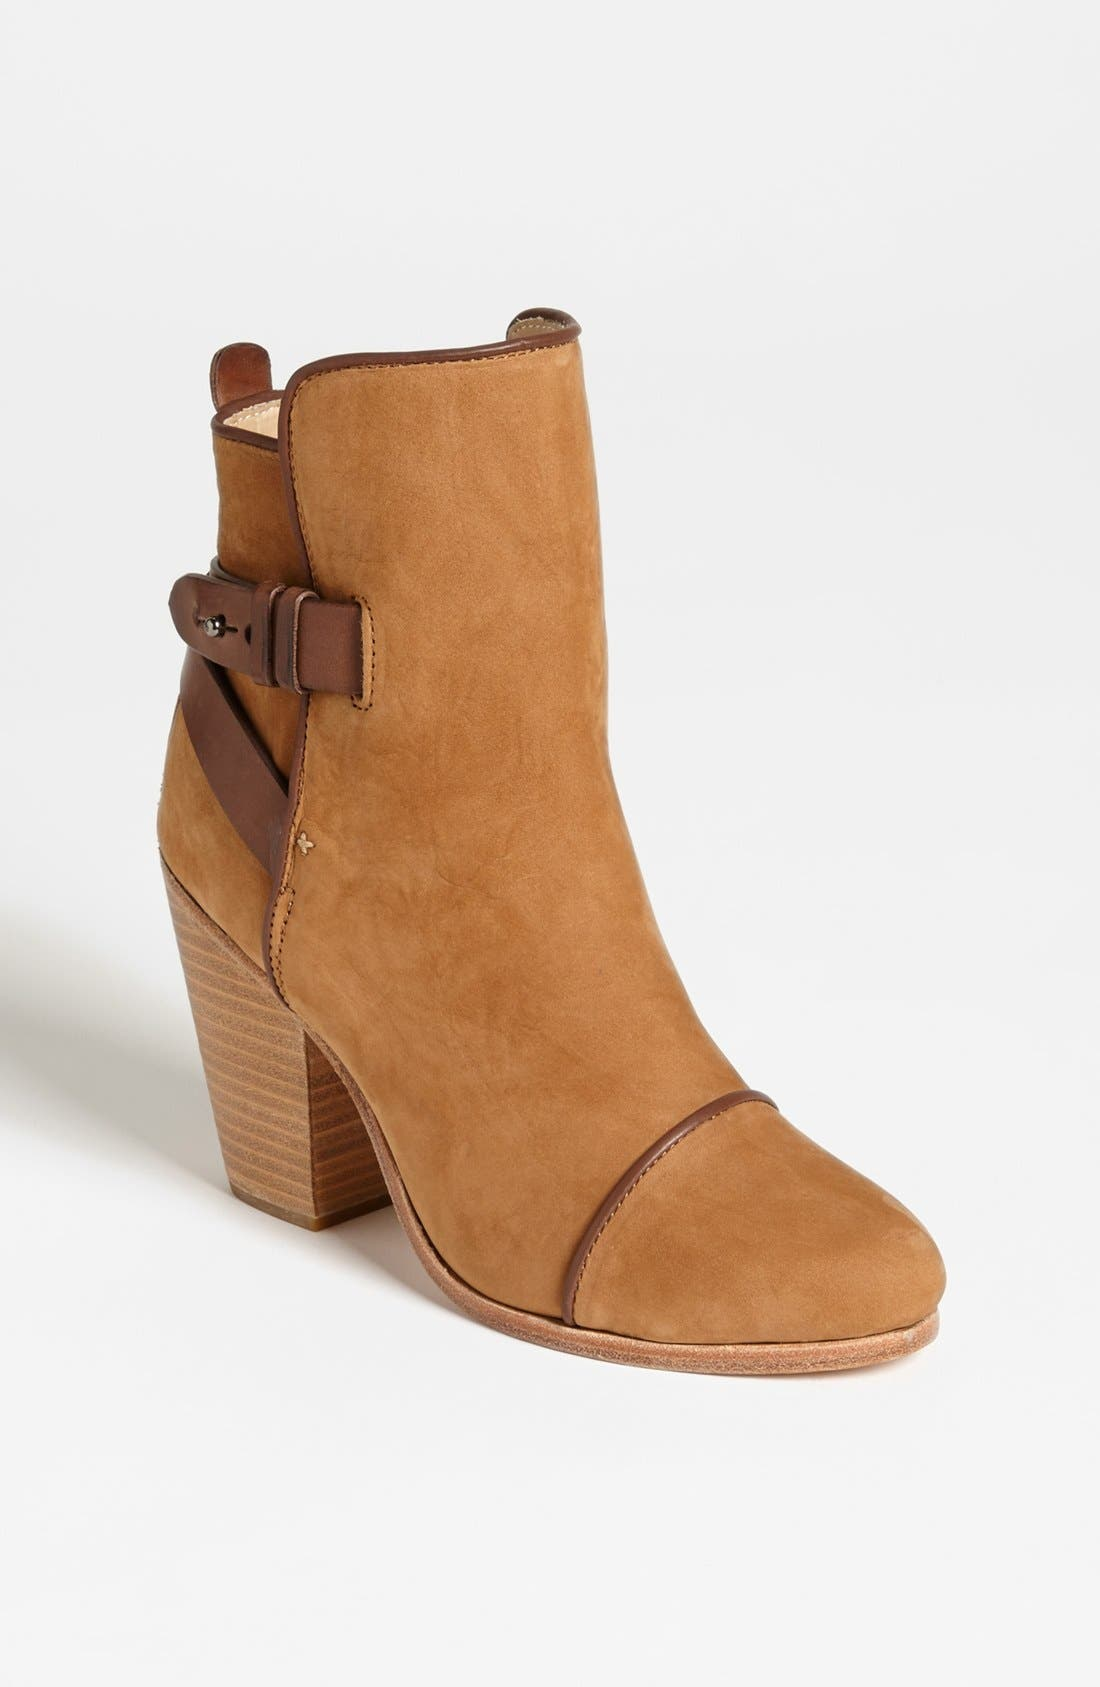 Alternate Image 1 Selected - rag & bone 'Kinsey' Bootie